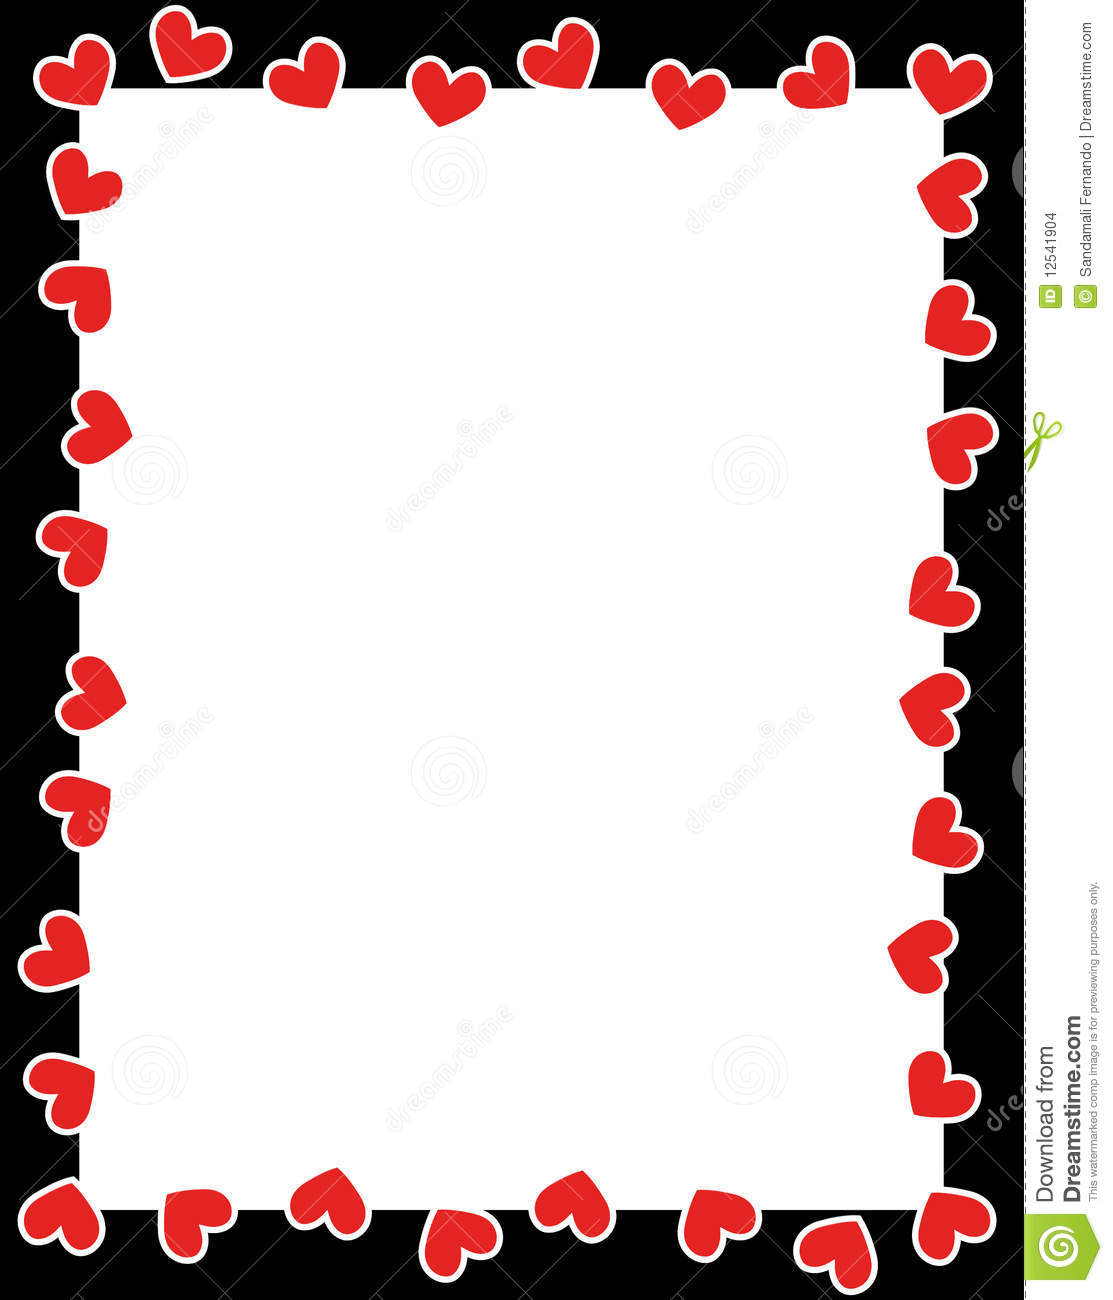 Clean Valentine S Day Holiday Love Borde-Clean Valentine S Day Holiday Love Border With Red Hearts For-15